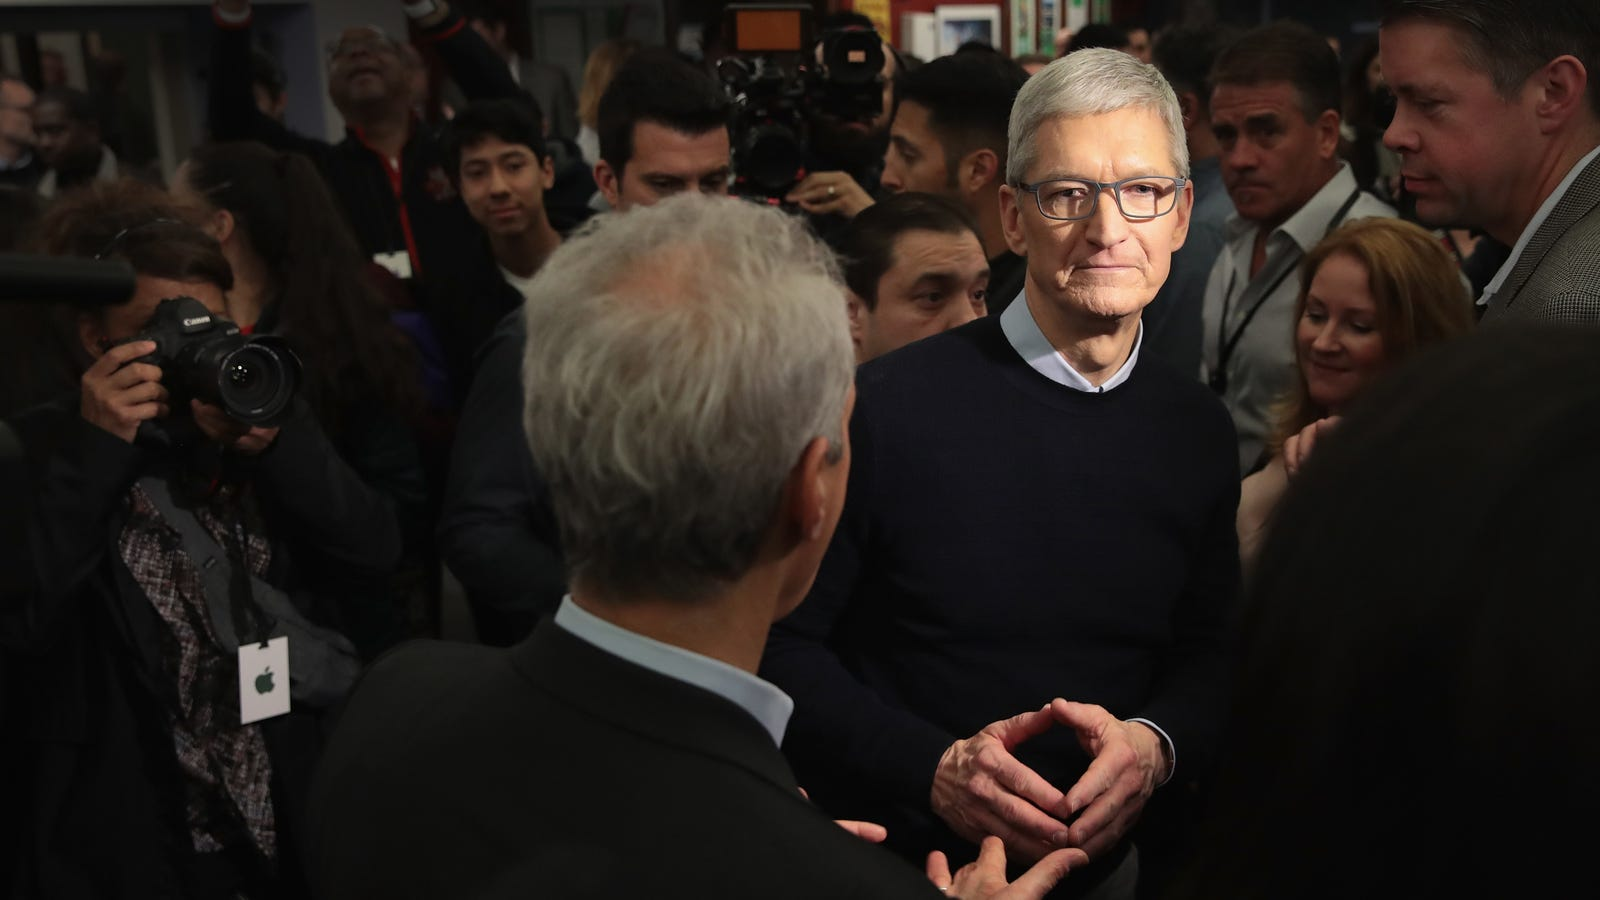 Tim Cook on the iPhone distribution: We have to talk about Facebook - Gizmodo